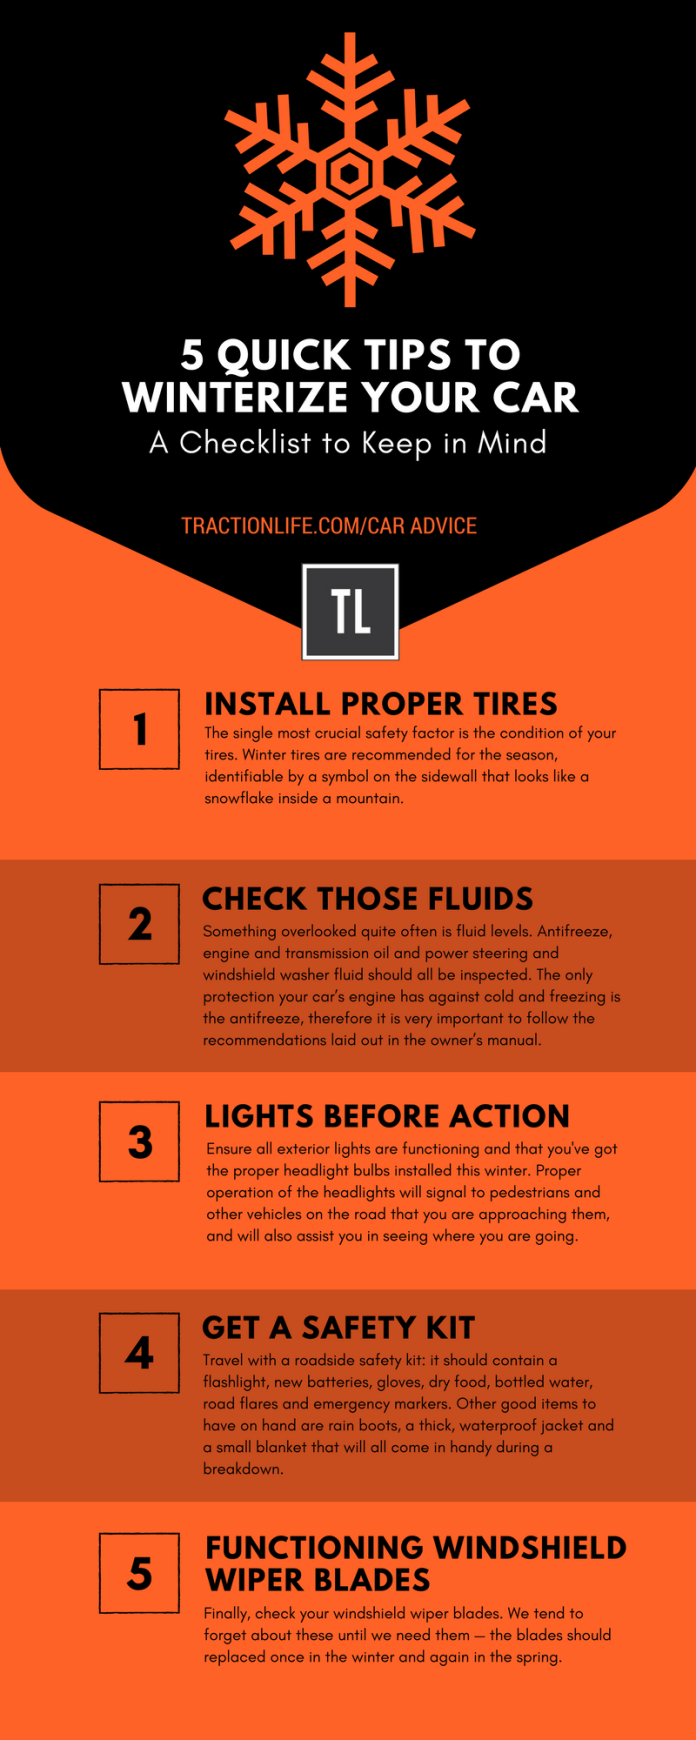 5 QUICK TIPS TO WINTERIZE YOUR CAR